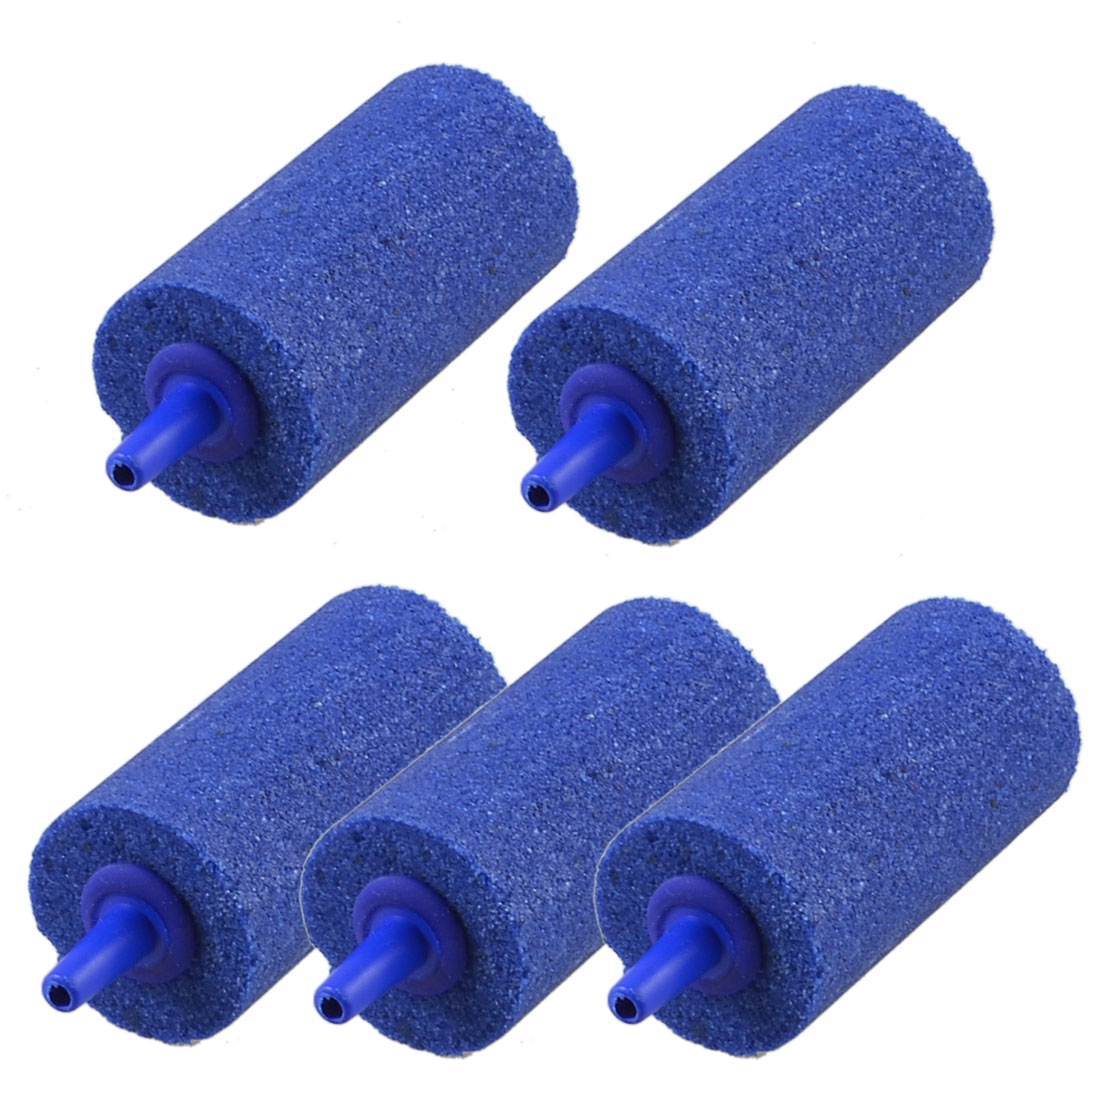 Blue Cylinder 25mmx50mm Mineral Bubble Release Aquarium Air Stone 5 Pcs